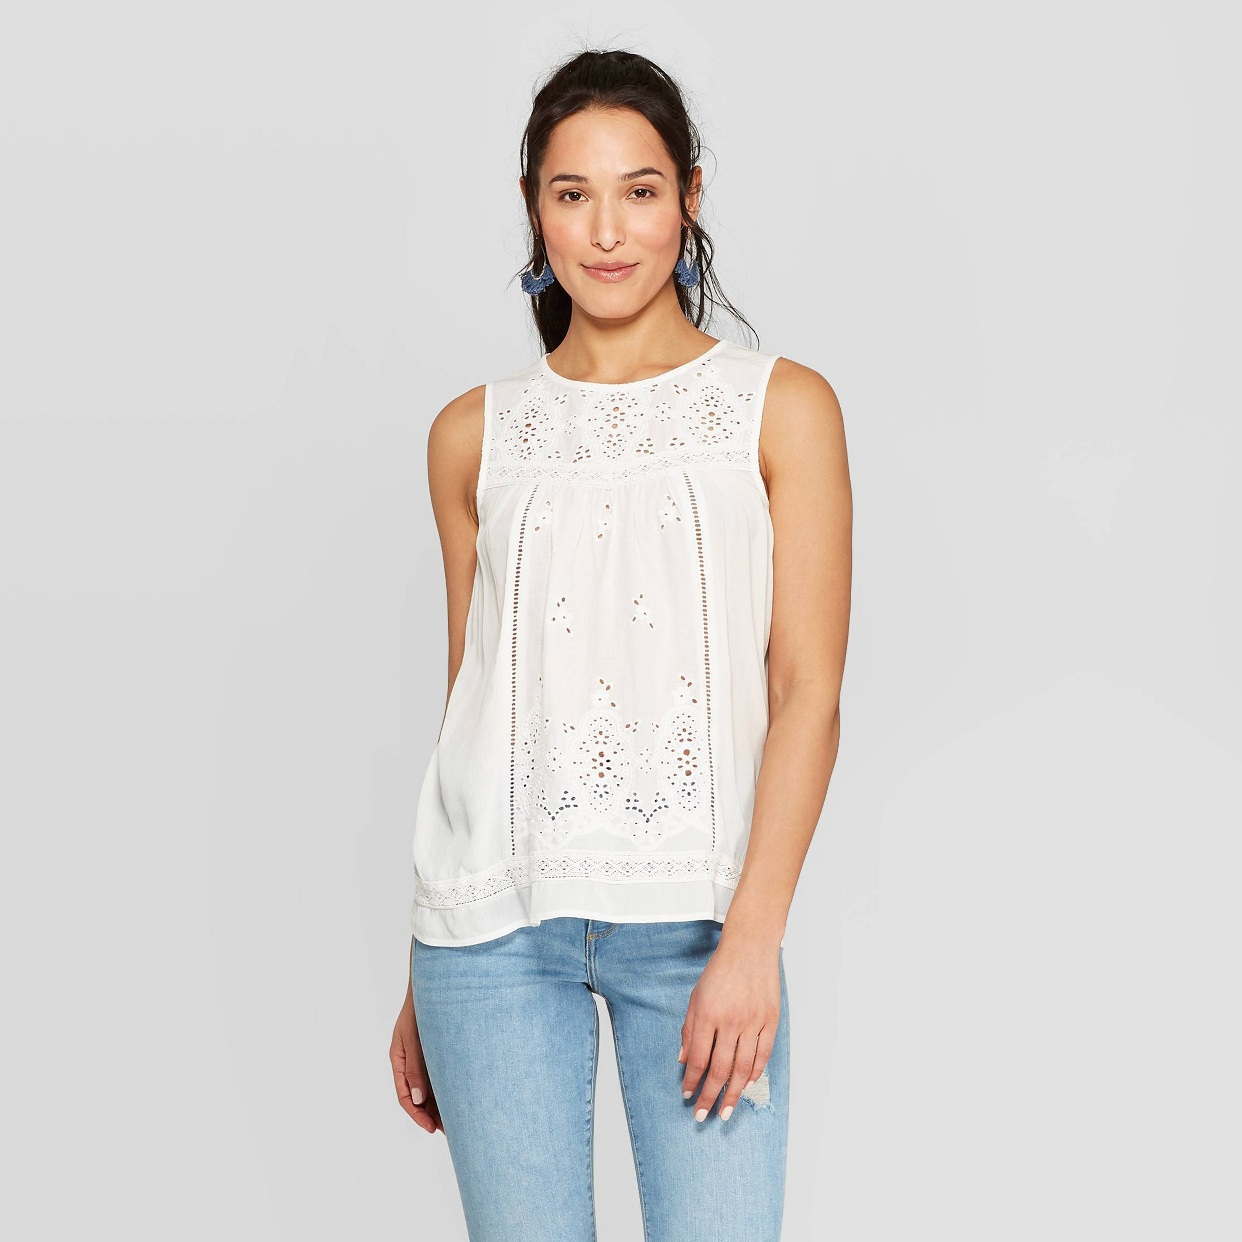 - A classic white eyelet top! The back is stretchy jersey material I love the design of the front.Find it here.